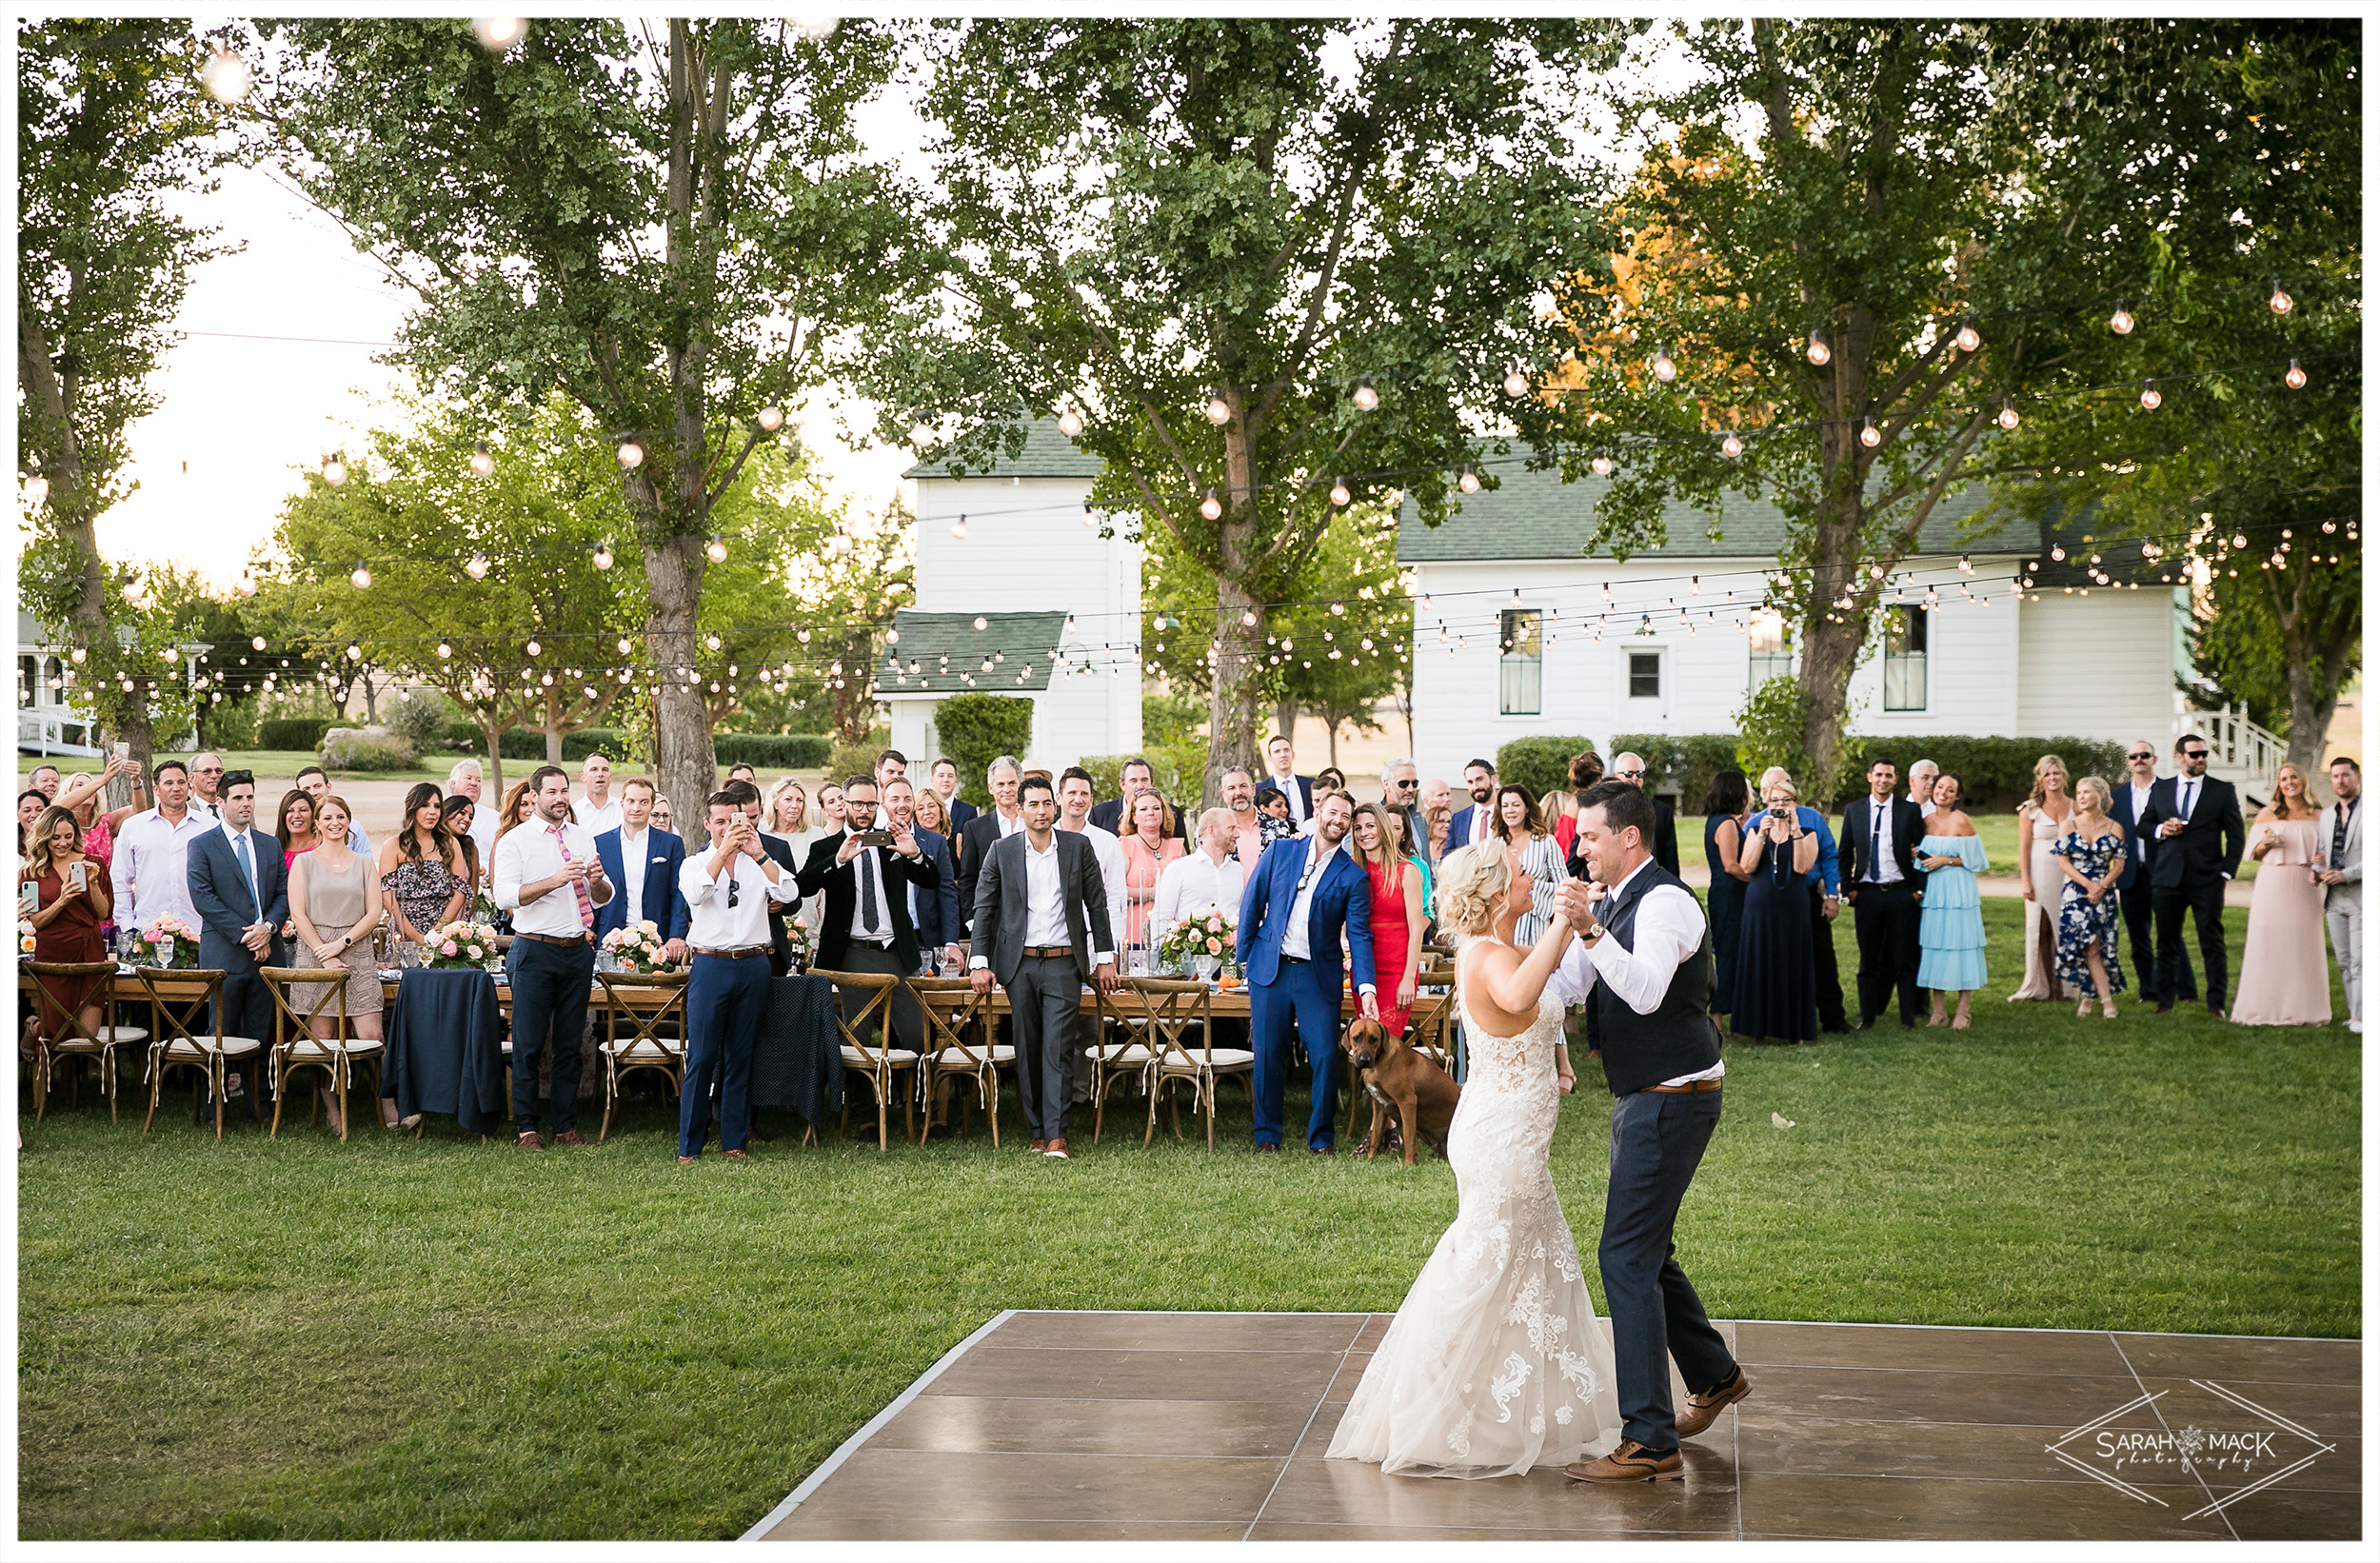 MA-Chandler-Ranch-Paso-Robles-Wedding-Photography-73.jpg